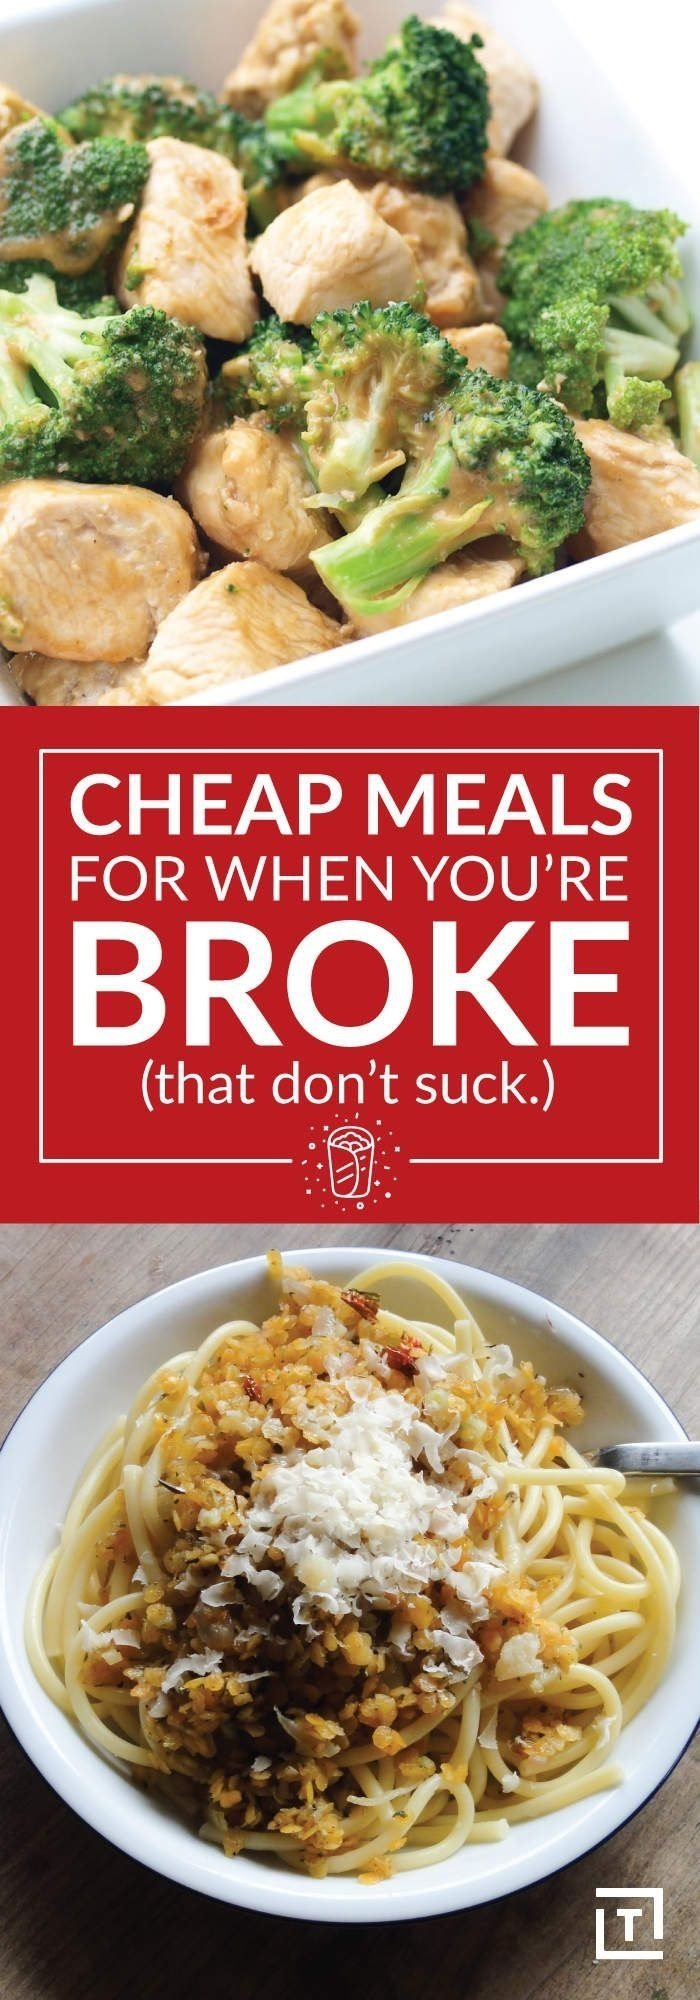 cheap meals for when you're broke (that don't suck) | cheap meals